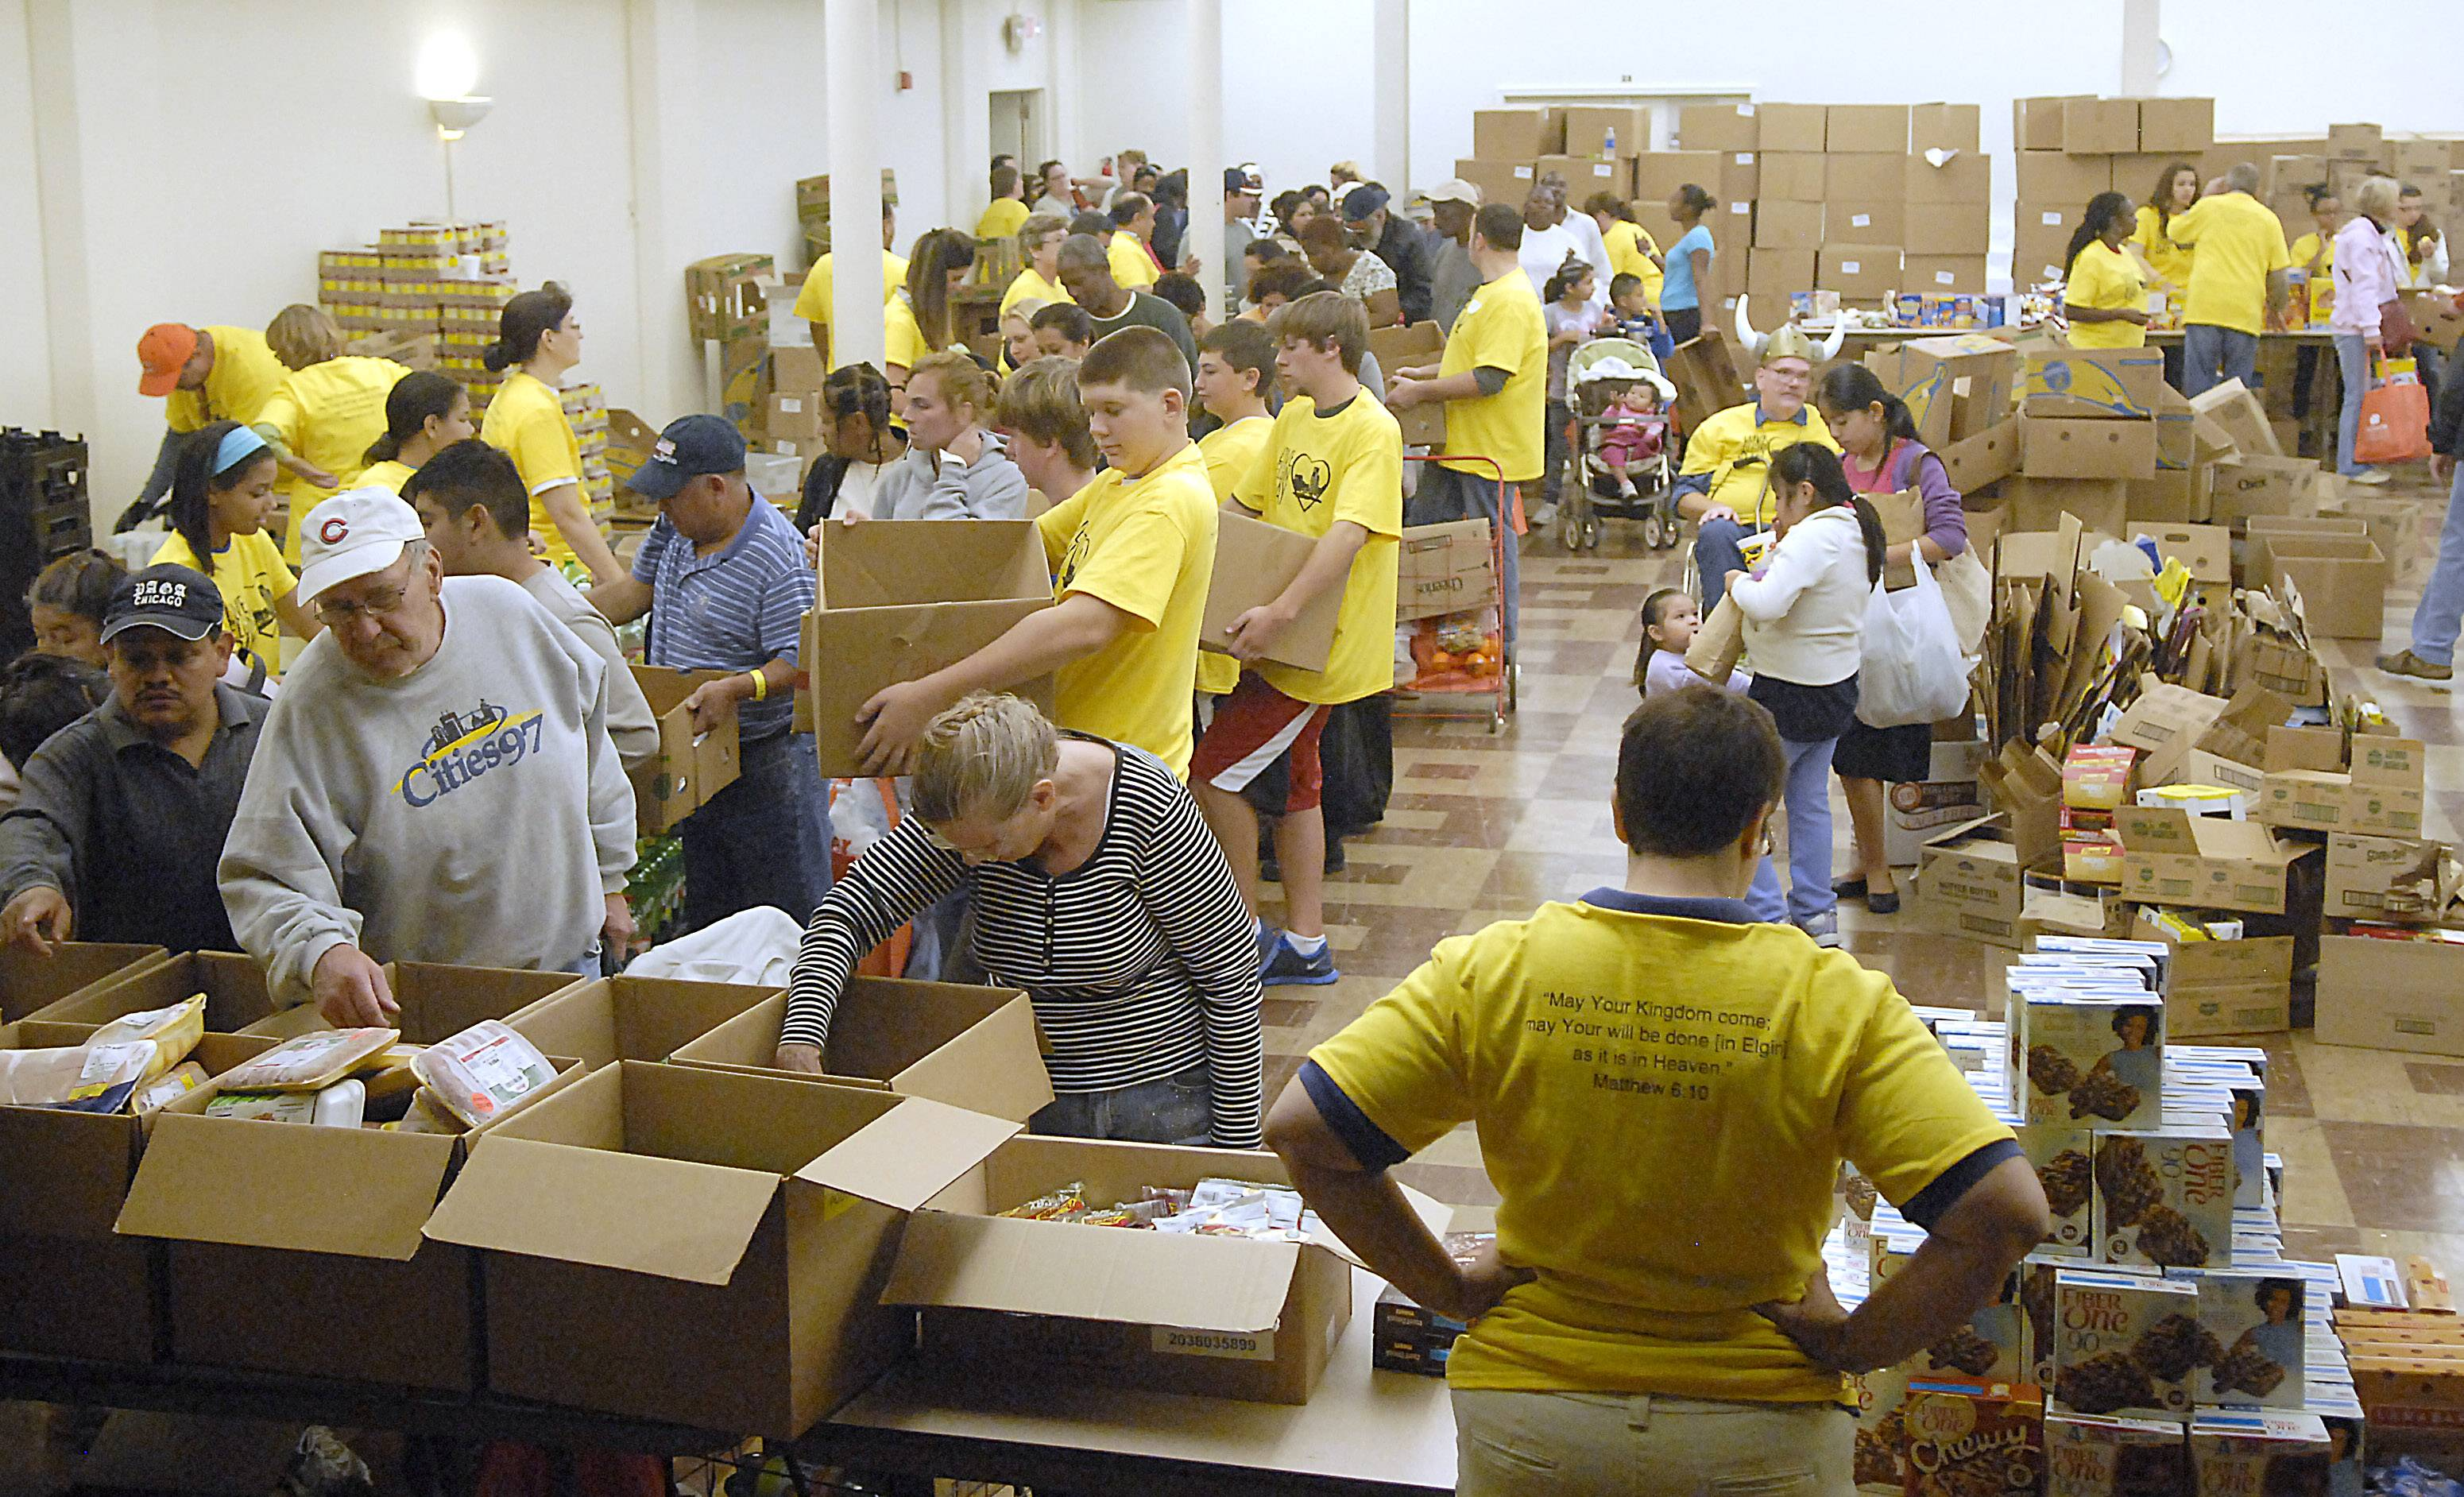 Volunteers in yellow shirts help people gather free groceries in the basement of the First United Methodist Church on Love Elgin Day last September.